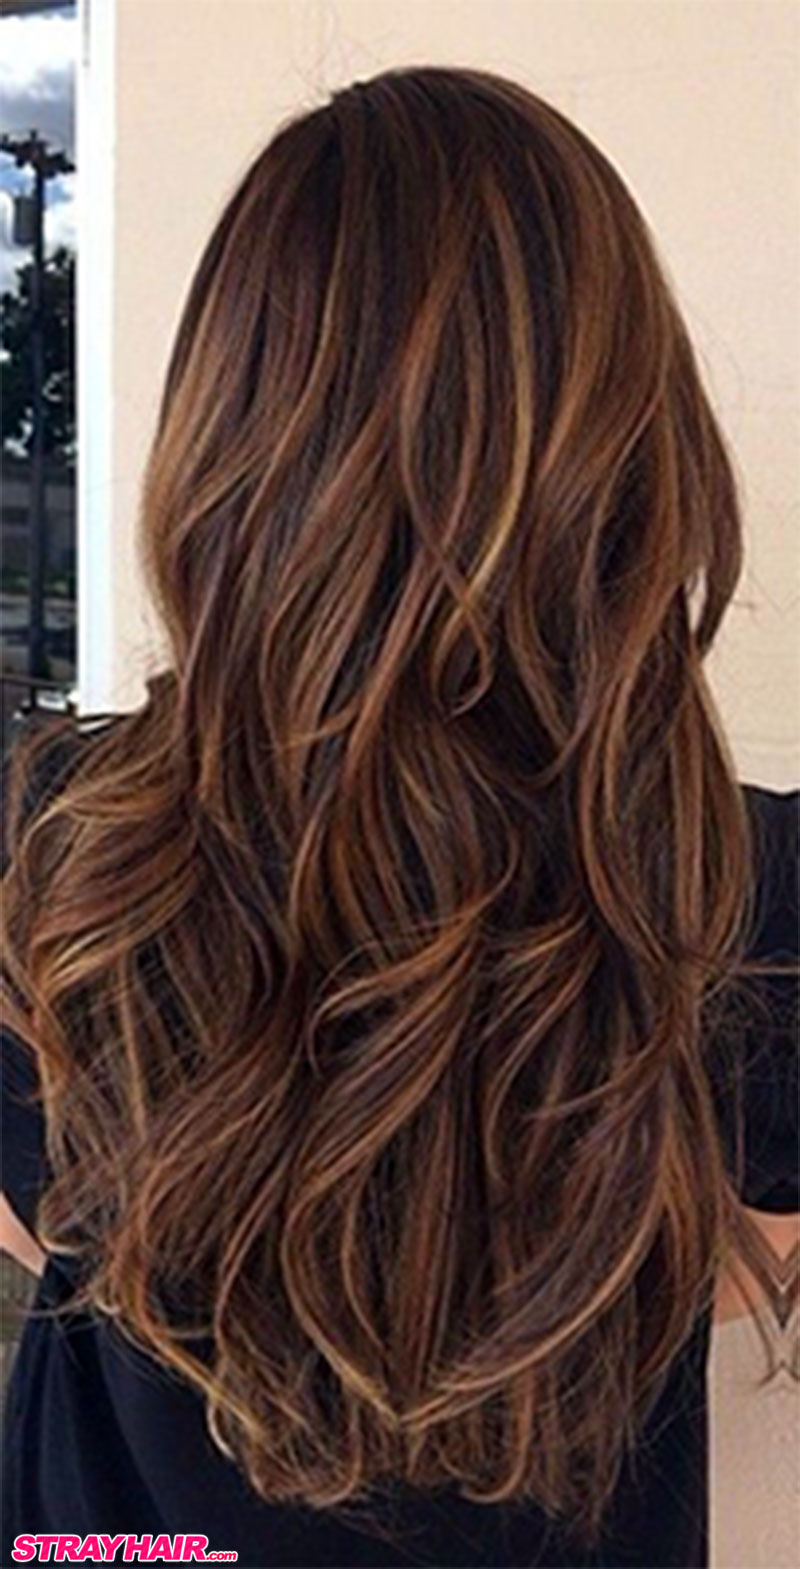 Beautiful Chocolate And Caramel Balayage Hair Strayhair